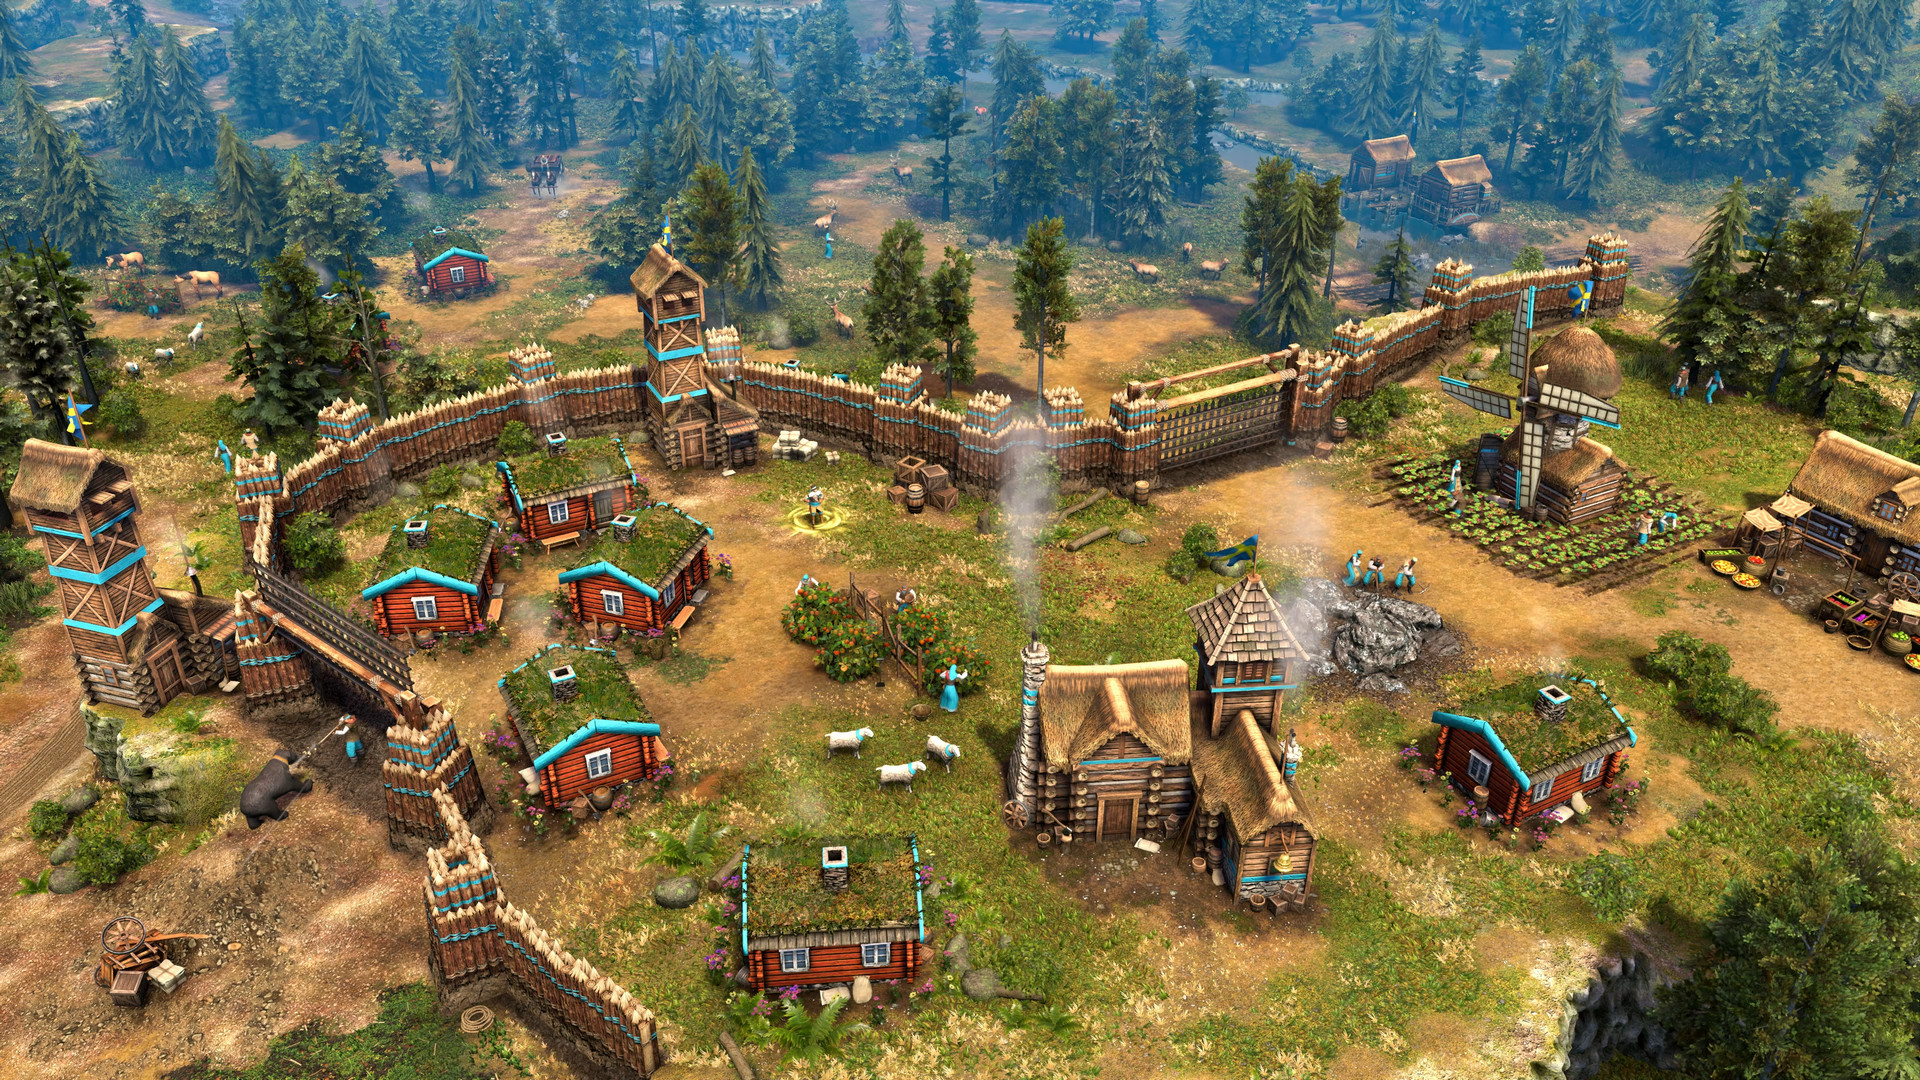 All cheats and codes of Age of Empires 3 Definitive Edition